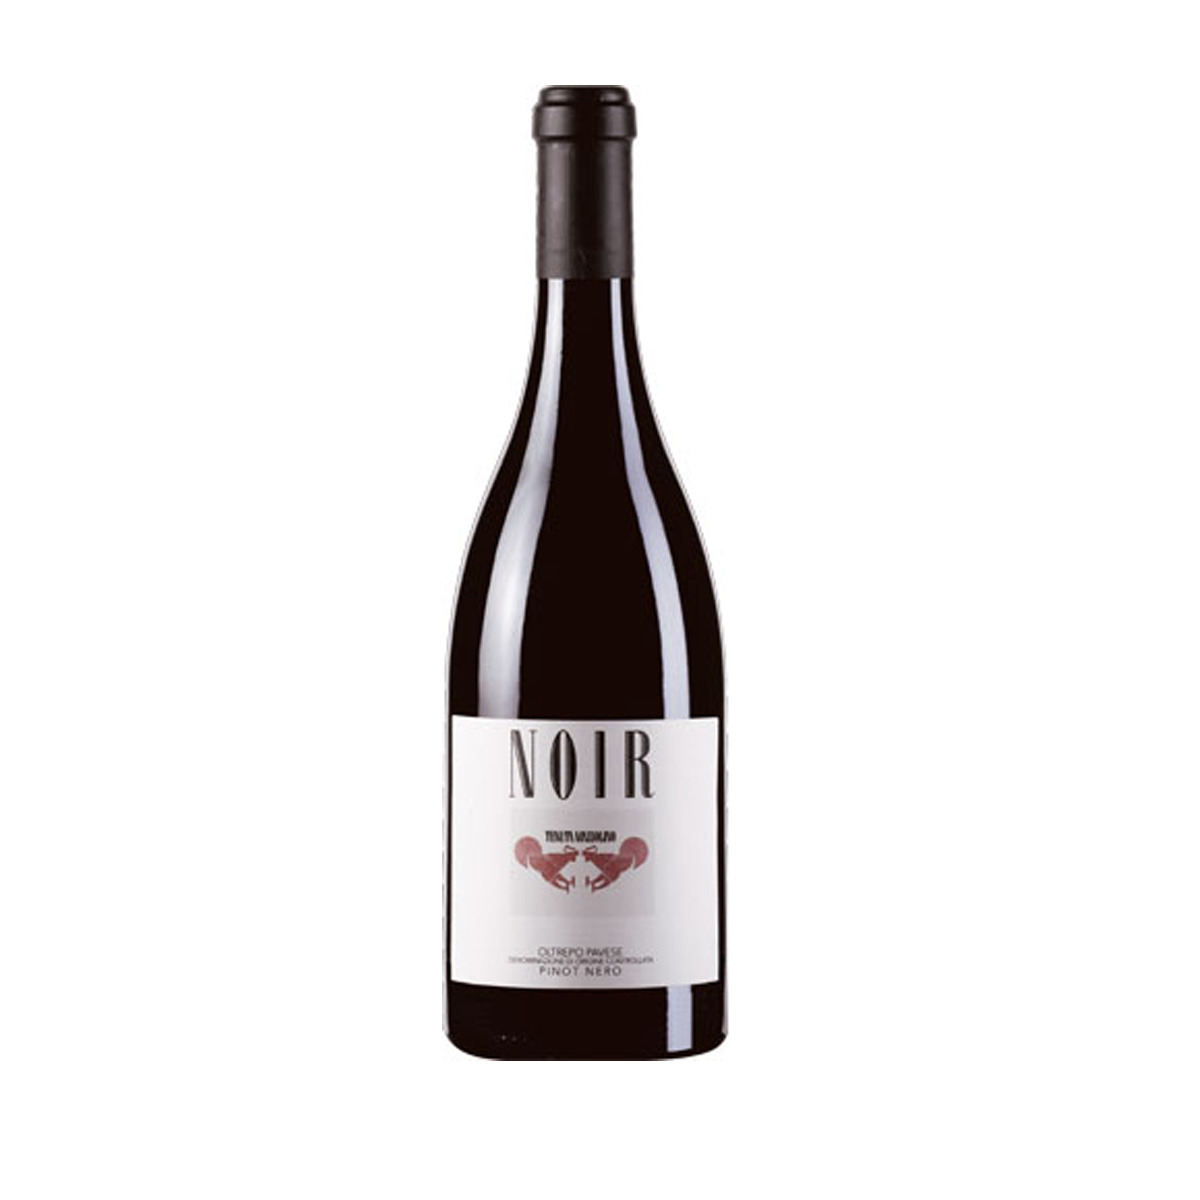 Pinot Nero dell'Oltrepò Pavese Noir